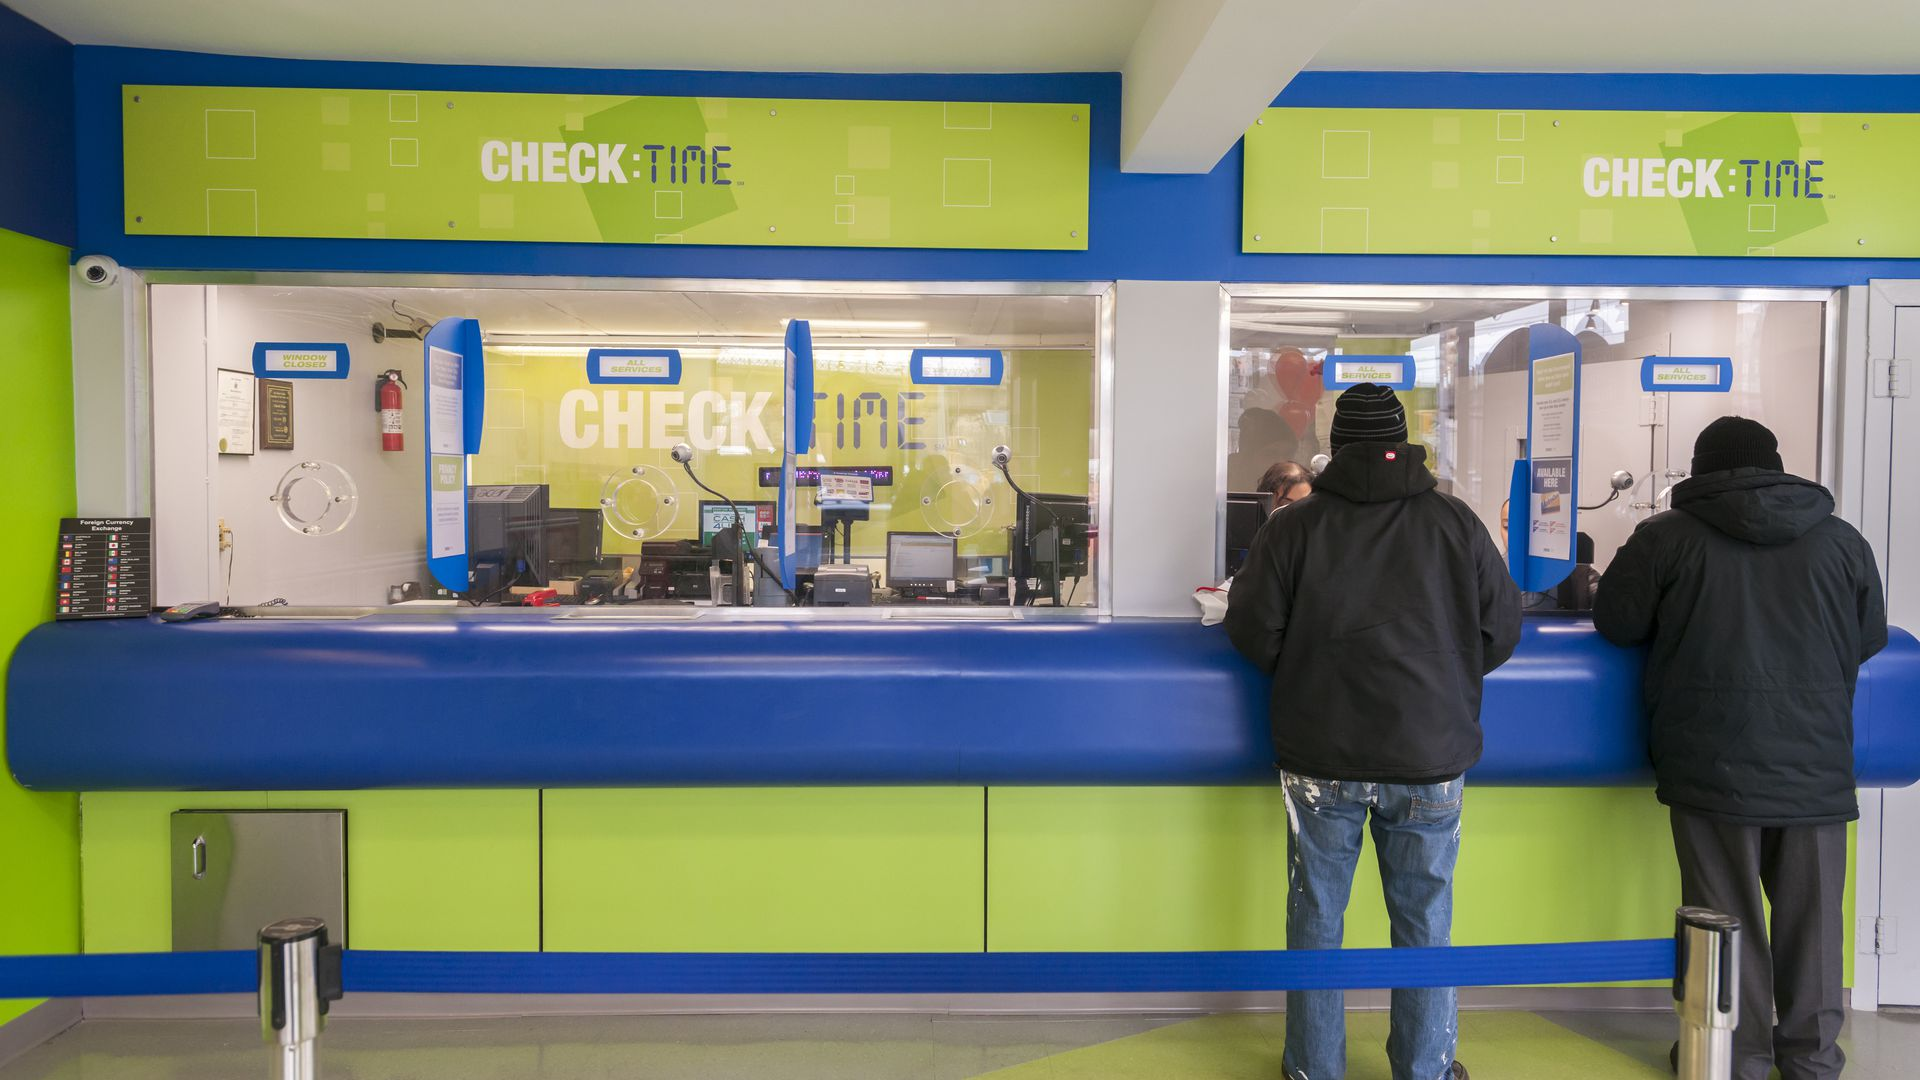 Customers in the newly remodeled branch of Check:Time in the Williamsburg neighborhood of Brooklyn in New York on Thursday, January 14, 2016.